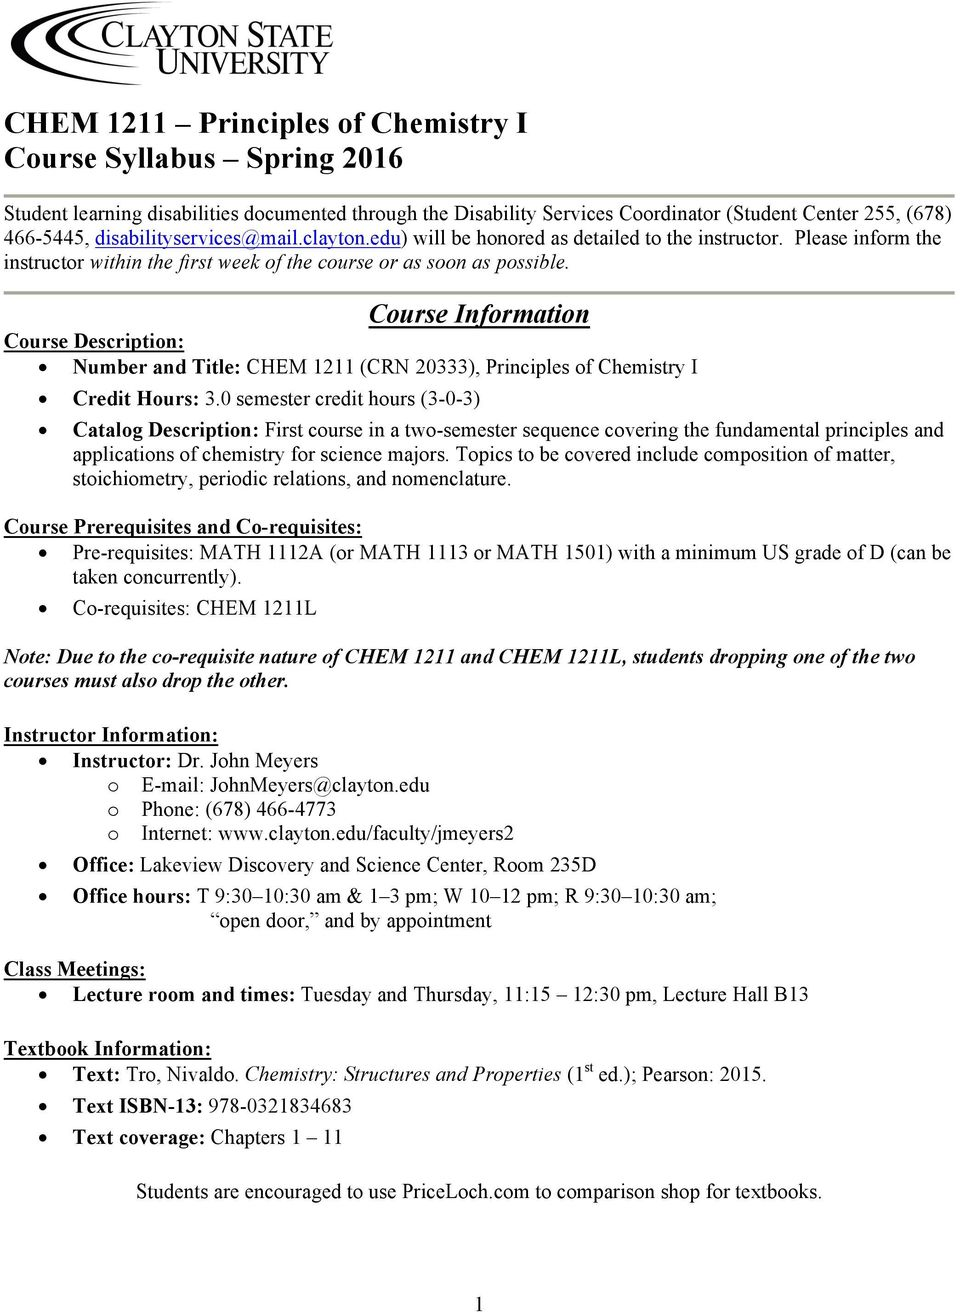 Course Information Course Description: Number and Title: CHEM 1211 (CRN 20333), Principles of Chemistry I Credit Hours: 3.